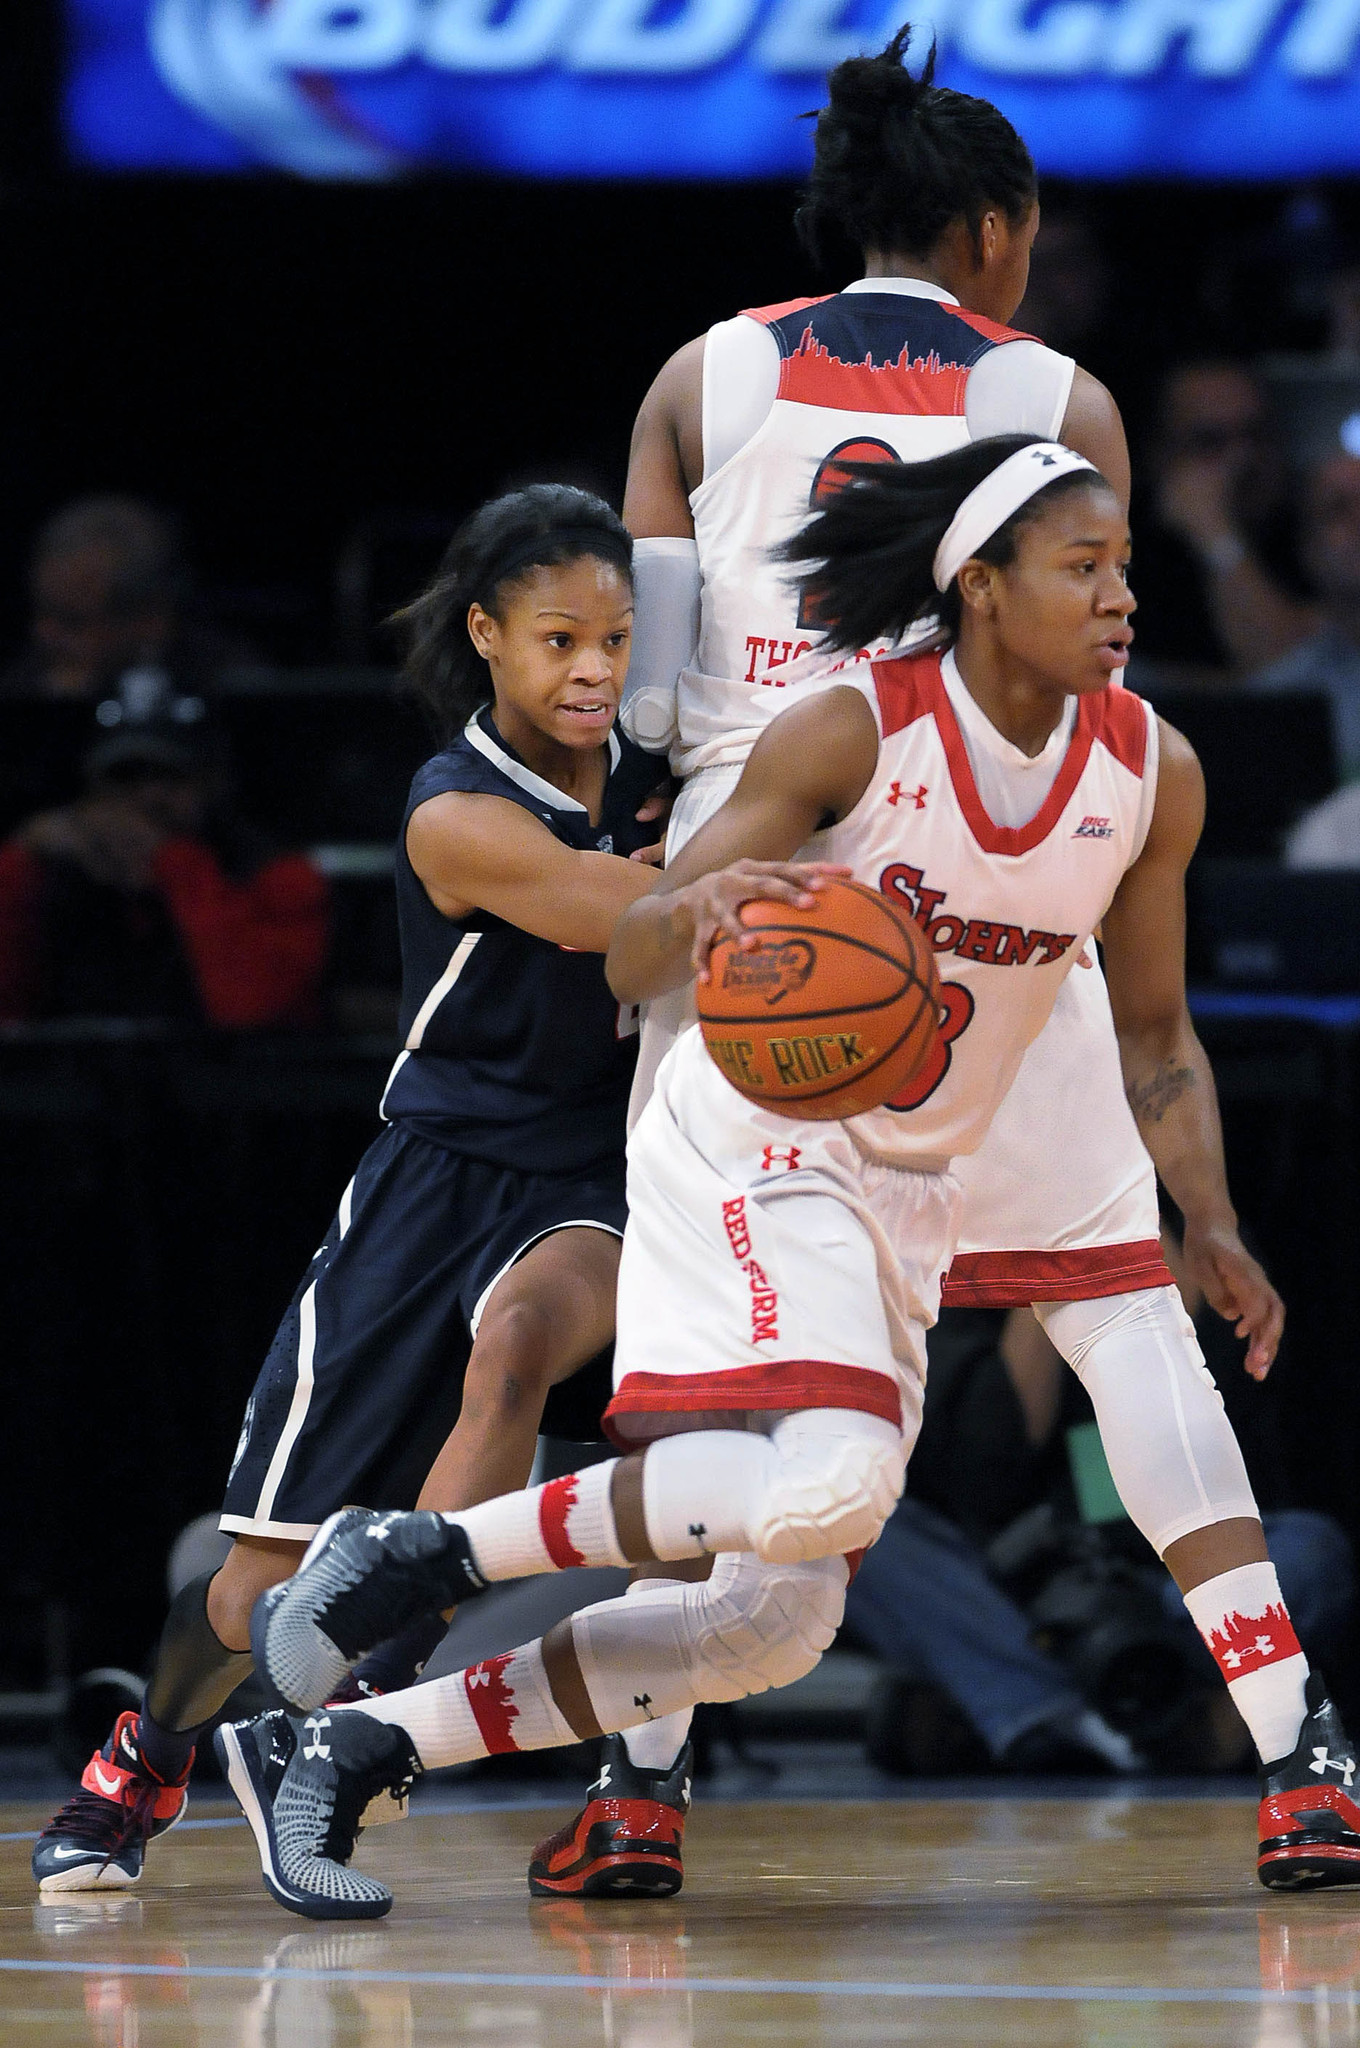 ucon women Get the latest uconn huskies news, scores, stats, standings, rumors, and more from espn.